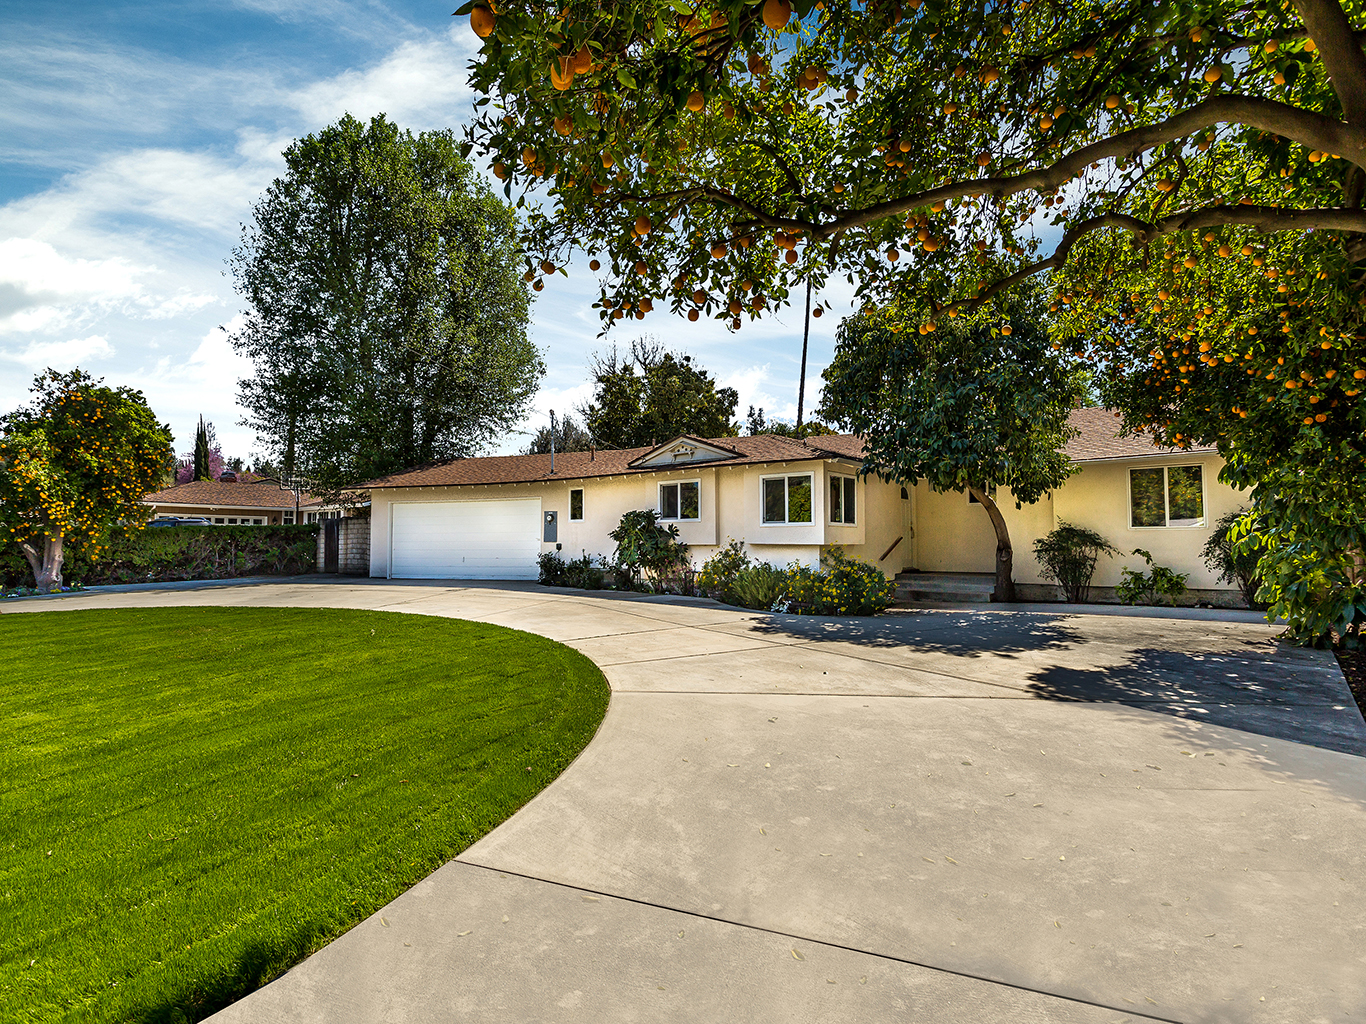 Single Family Home for Sale at 20530 Quedo Drive Woodland Hills, California 91364 United States